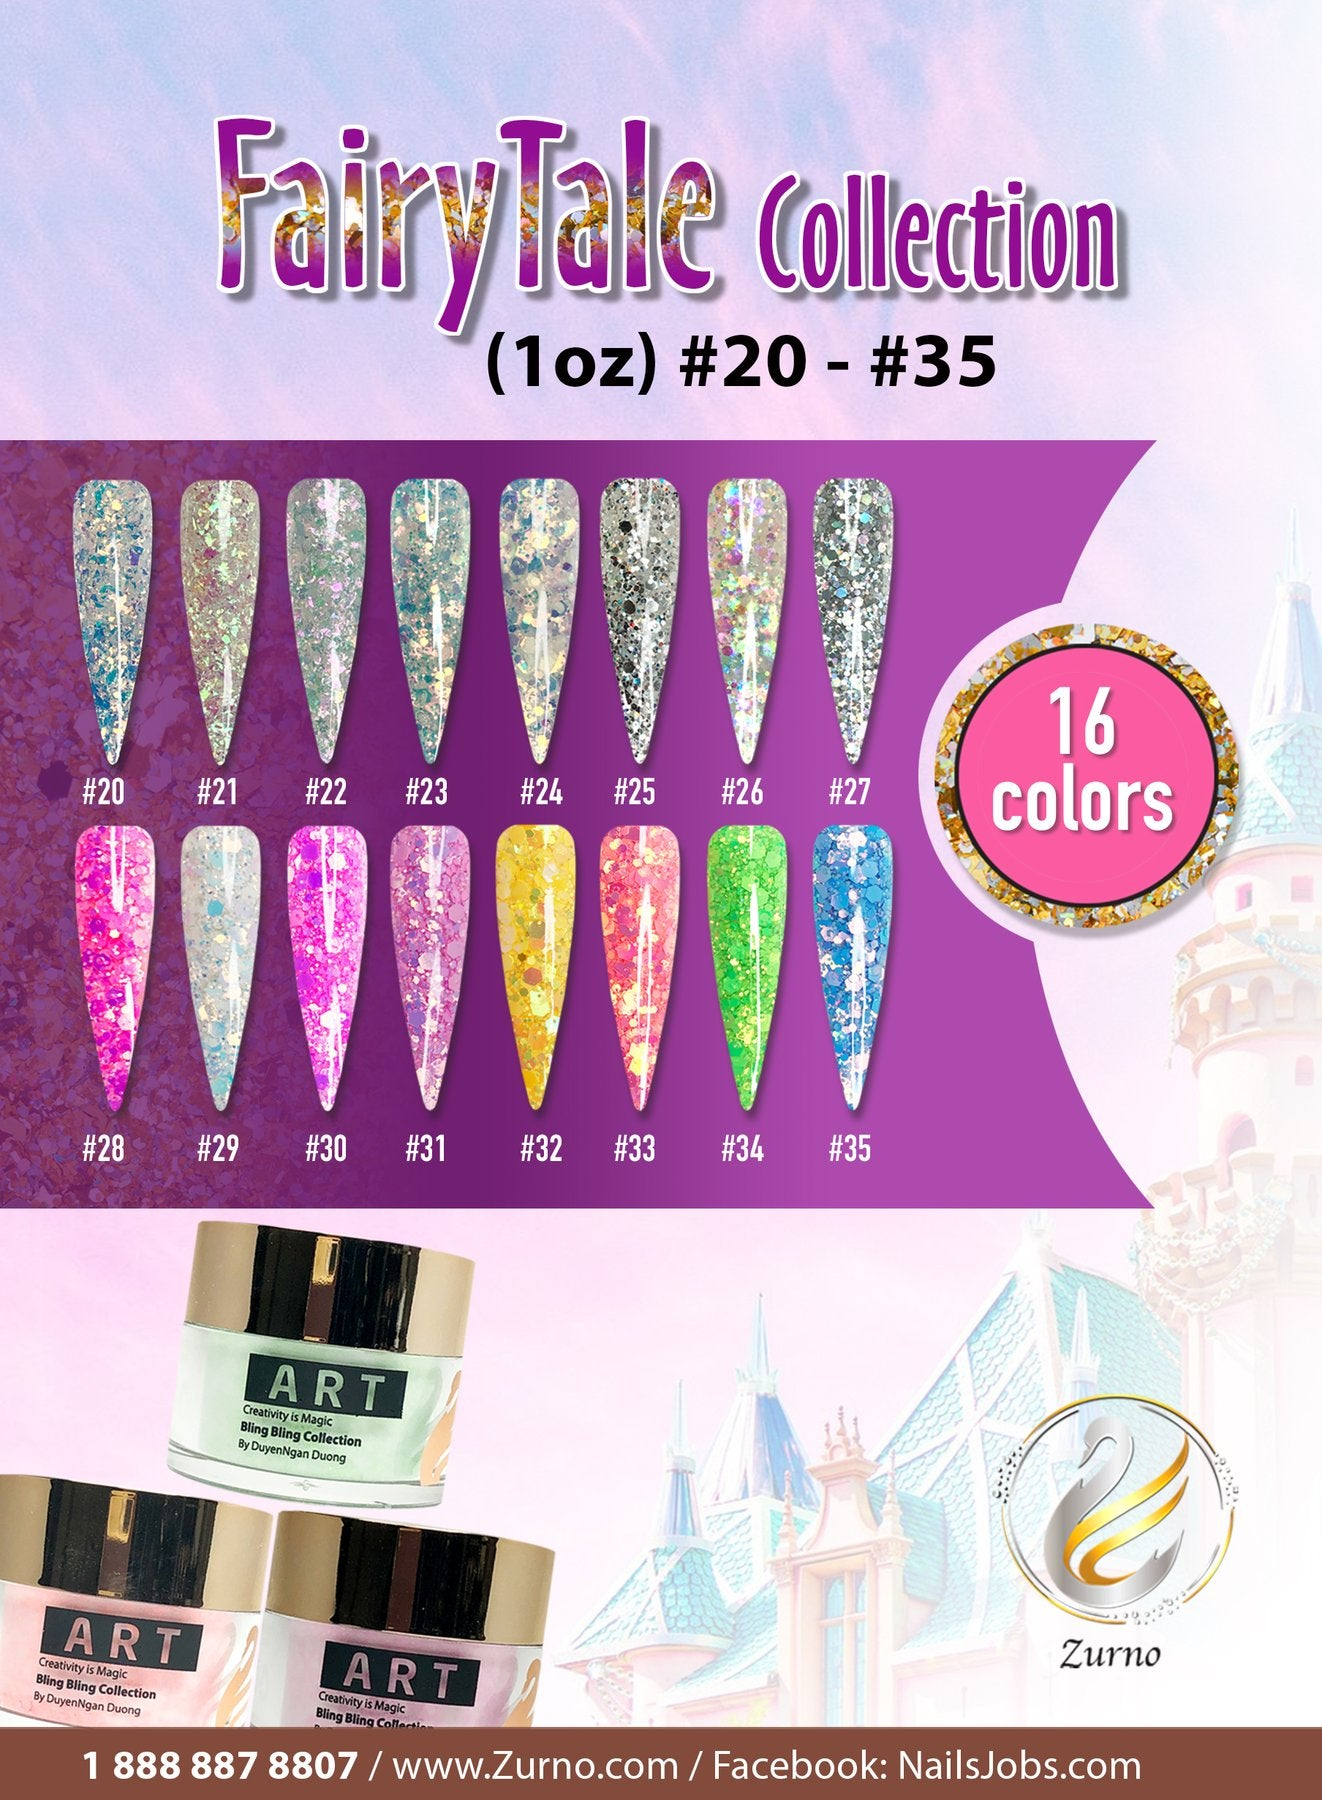 ZURNO-ART FAIRYTALE Collection- 16 color set (ACRYLIC + GLITTER)